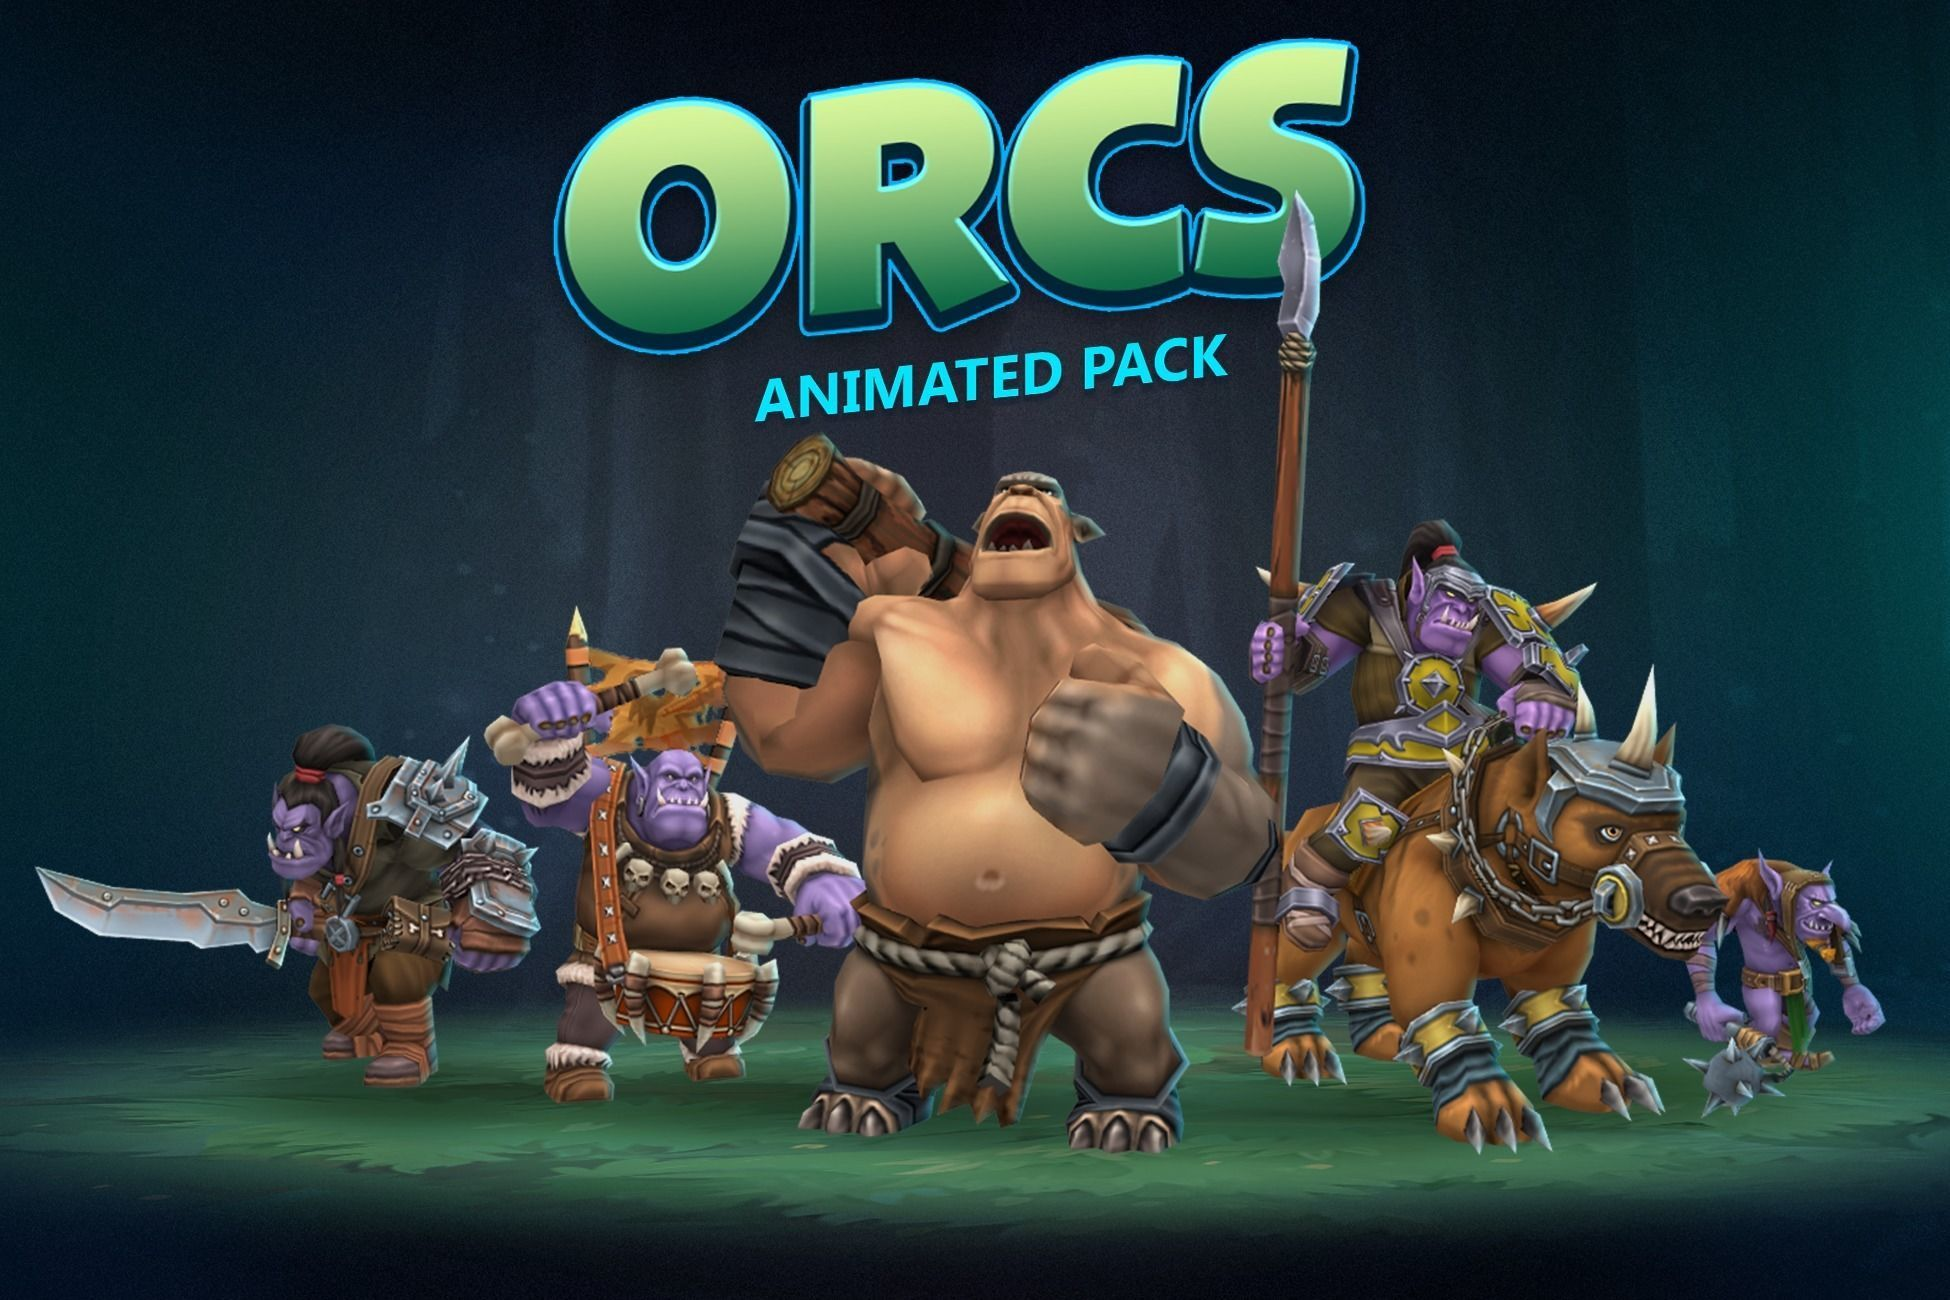 Orcs animated pack